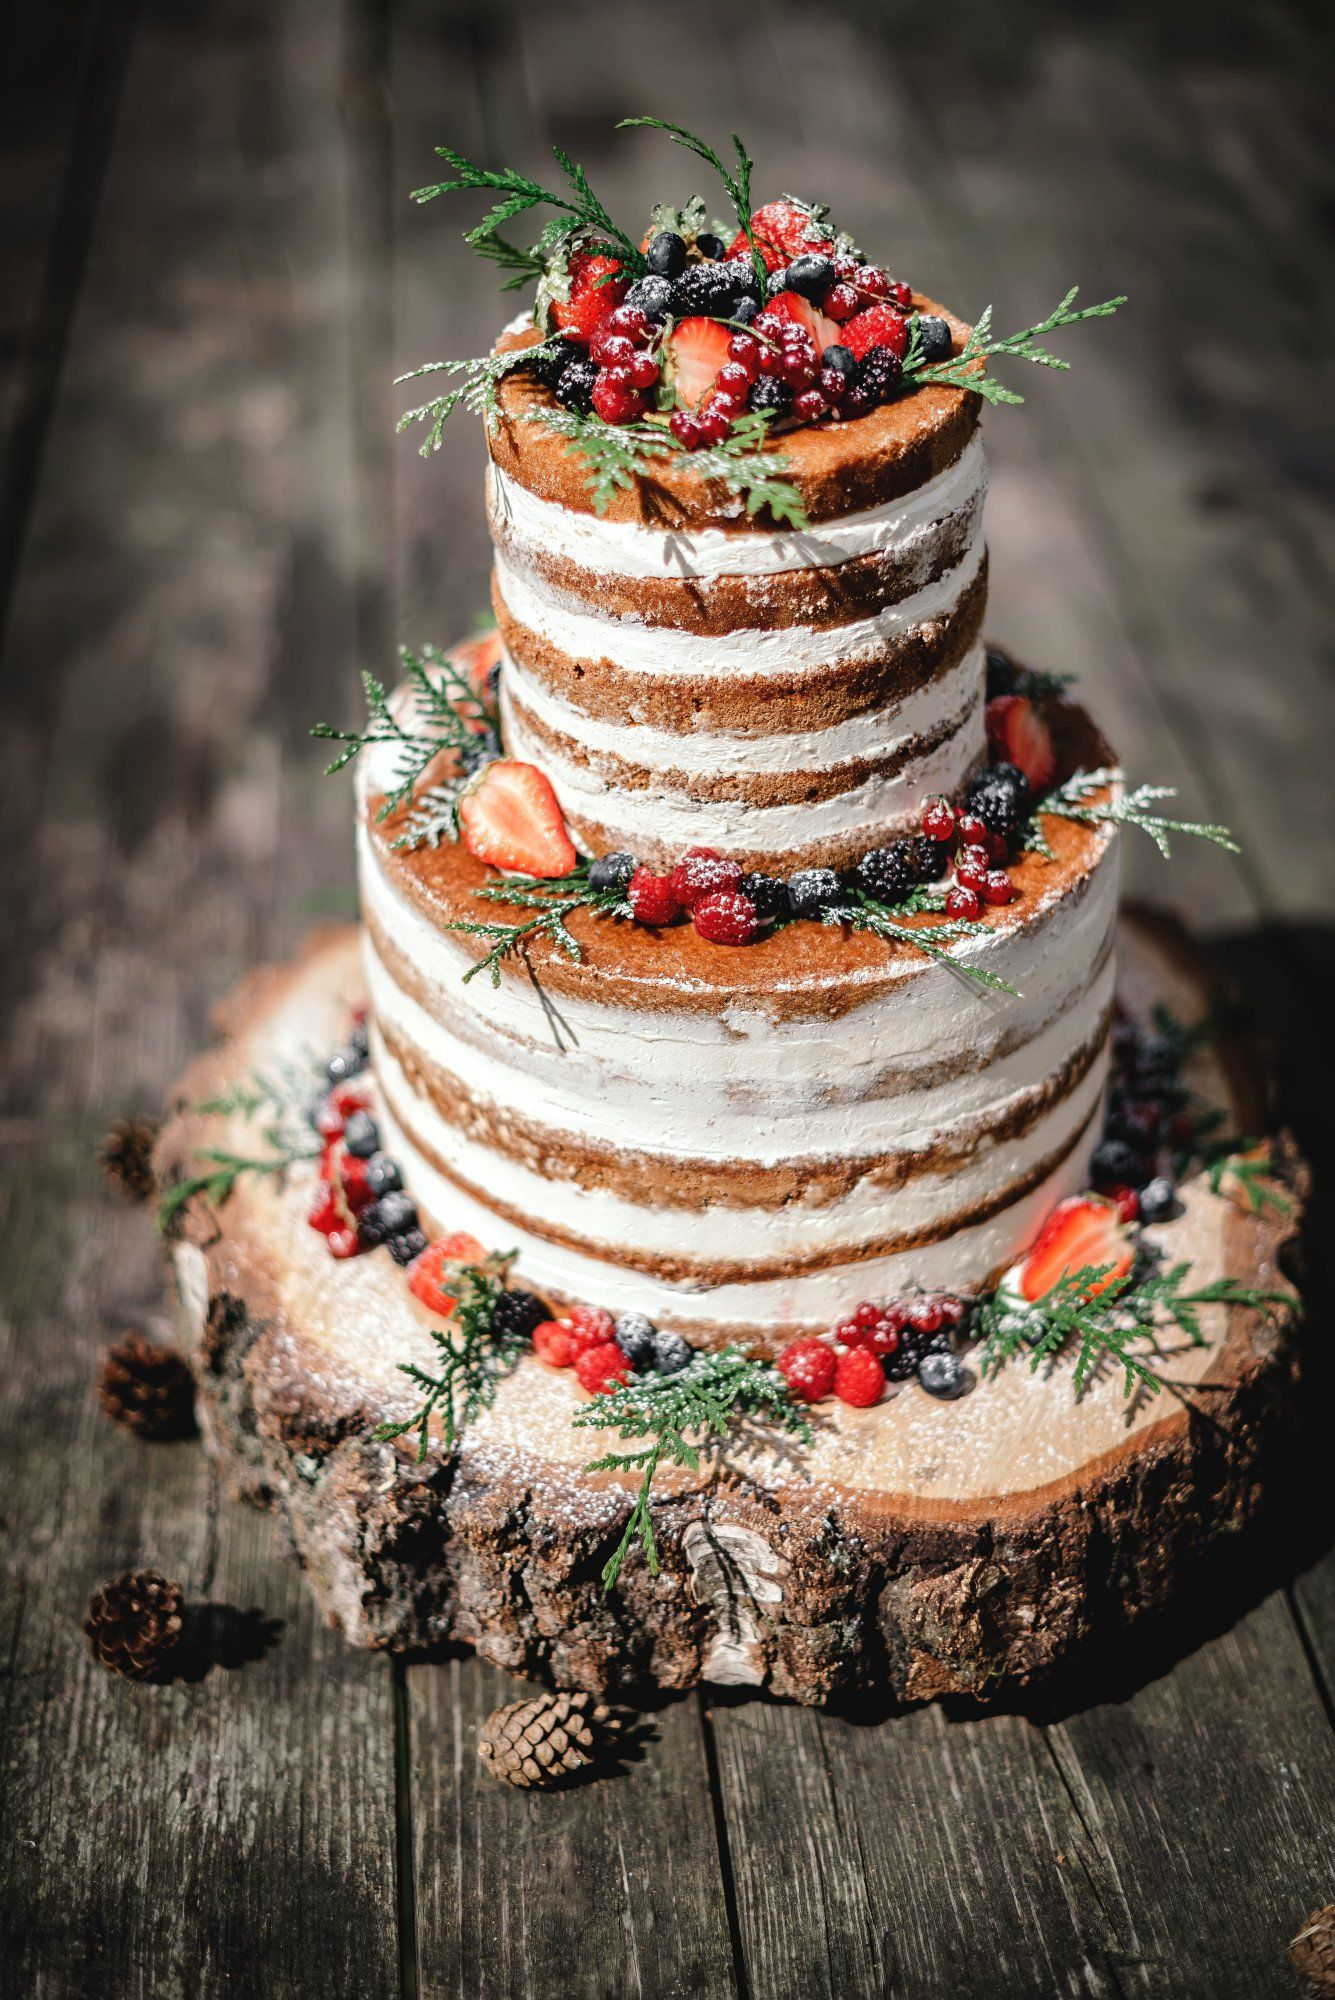 Something Sweet 9 Designs For Rustic Wedding Cakes Too Pretty To Eat